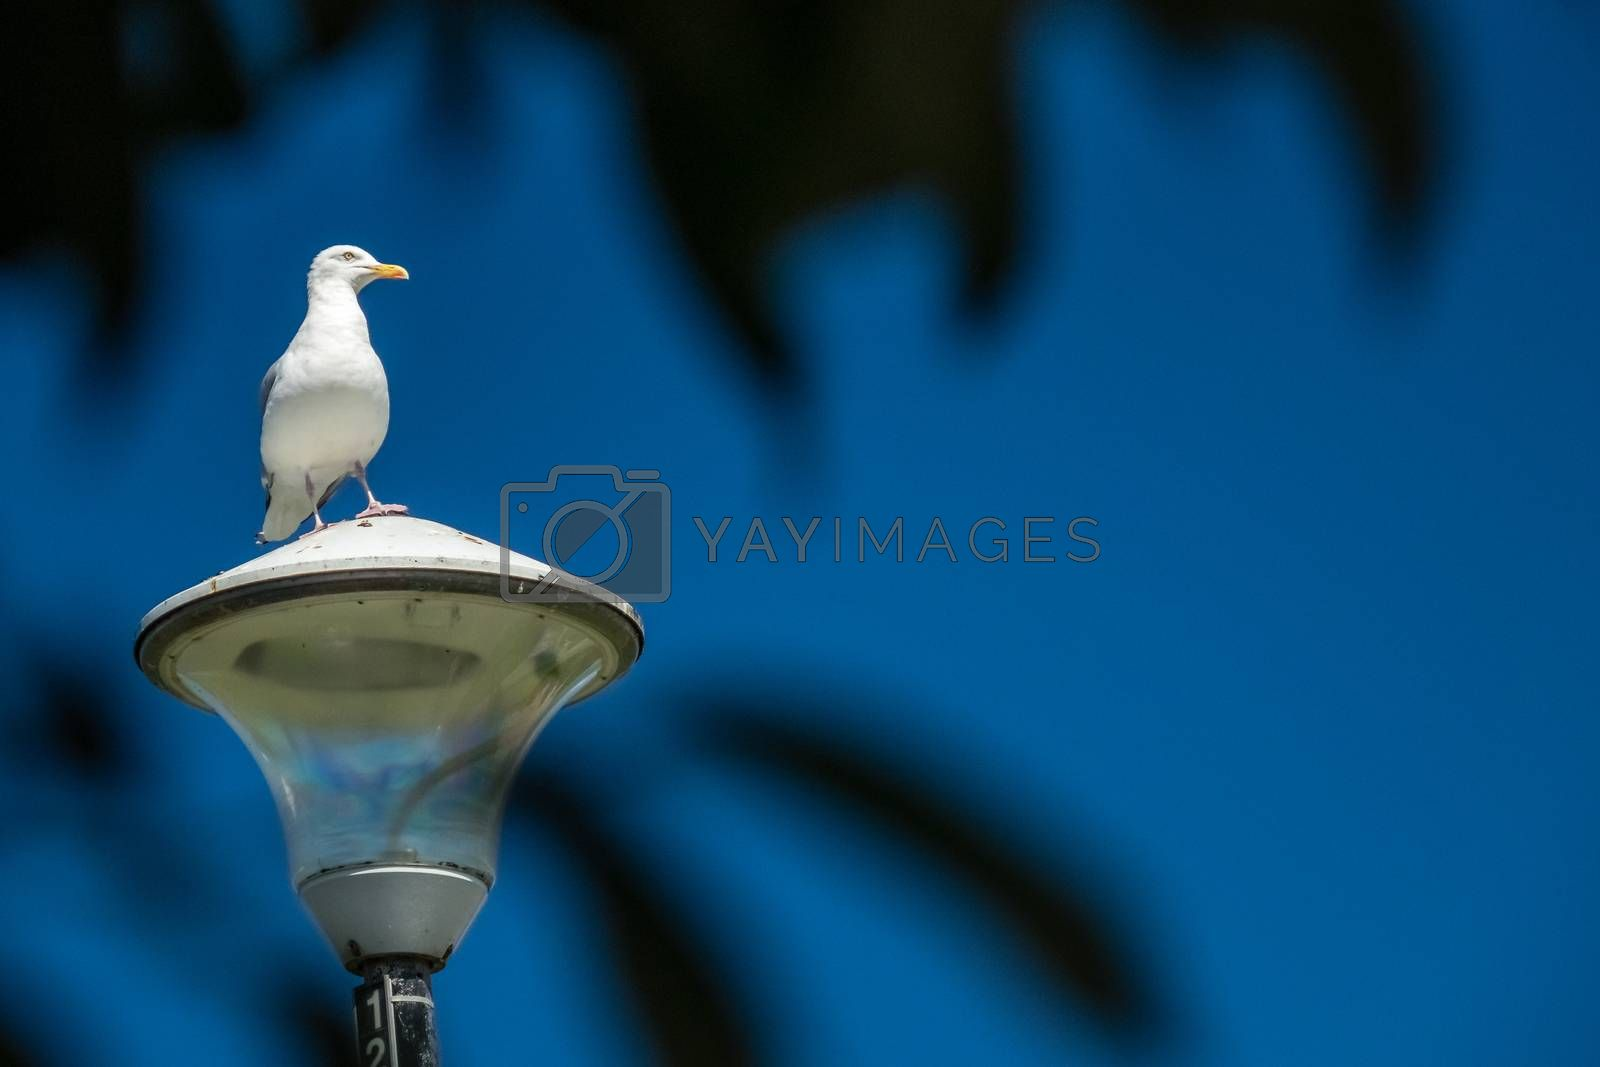 Seagull sitting on a lamppost with blue sky in the background